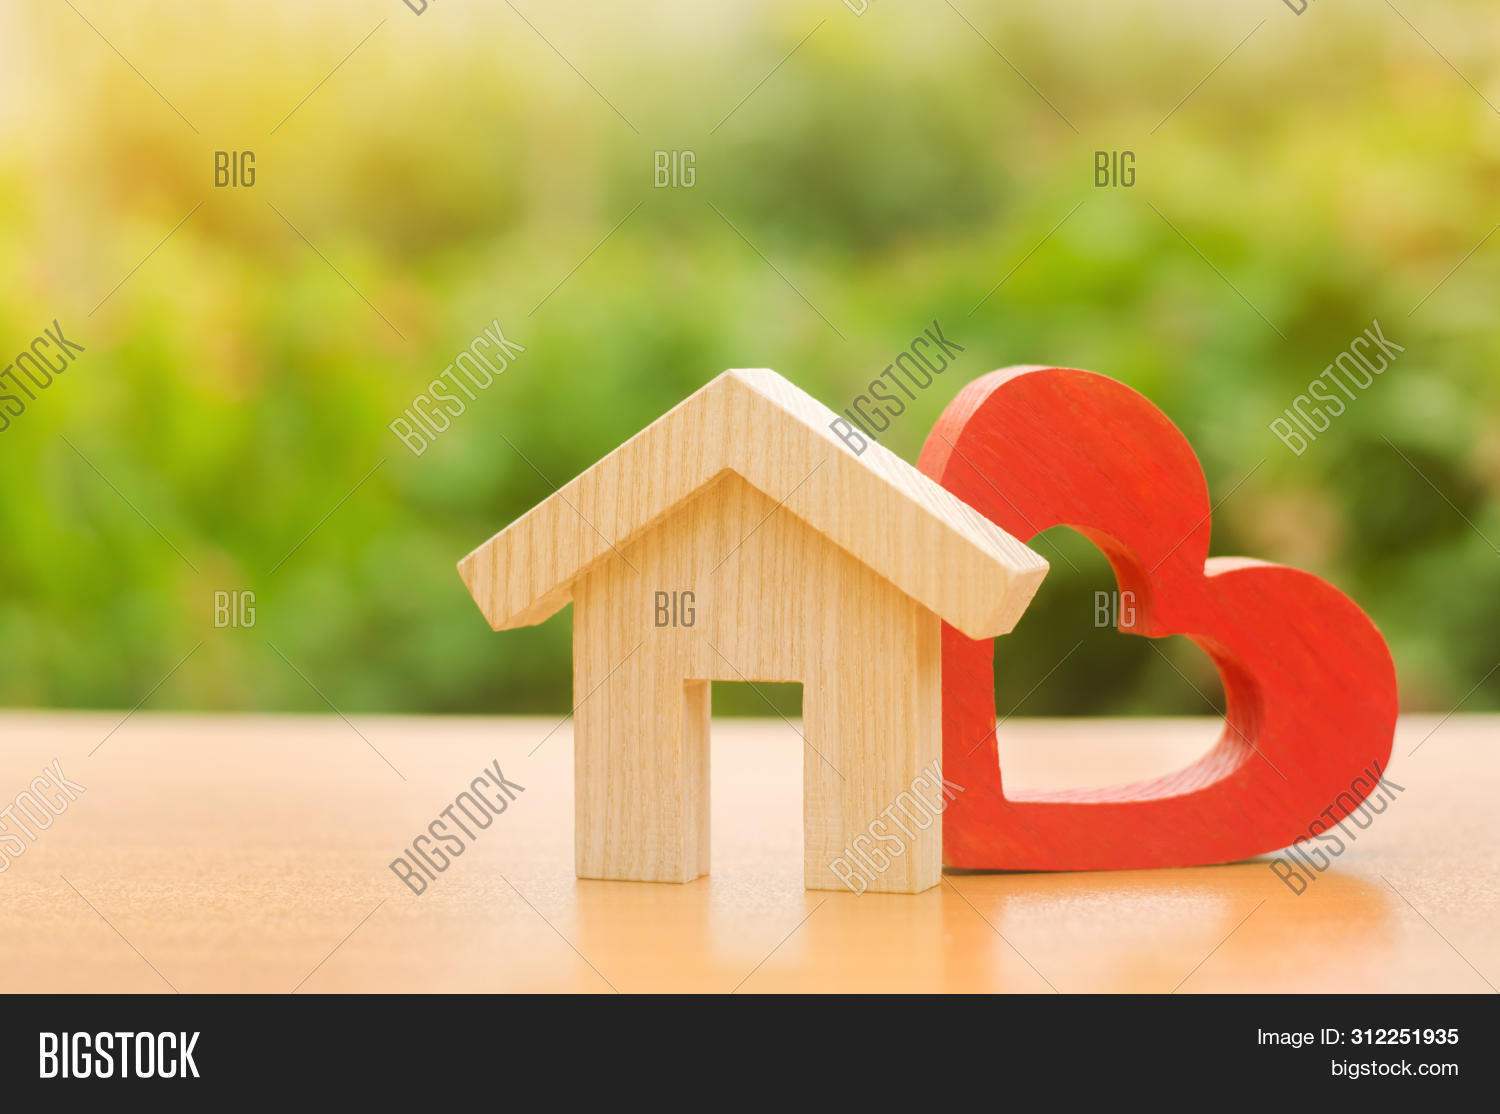 Figurine,affordable,architecture,building,business,buy,buying,concept,construction,dream,estate,family,heart,holding,home,hospitable,house,housing,insurance,interest,investment,loan,love,lovers,metaphor,mortgage,moving,nature,nest,new,parental,preferential,program,property,real,reconstruction,red,relocation,rent,renting,residential,sale,small,support,sweet,symbol,valentine,wooden,young